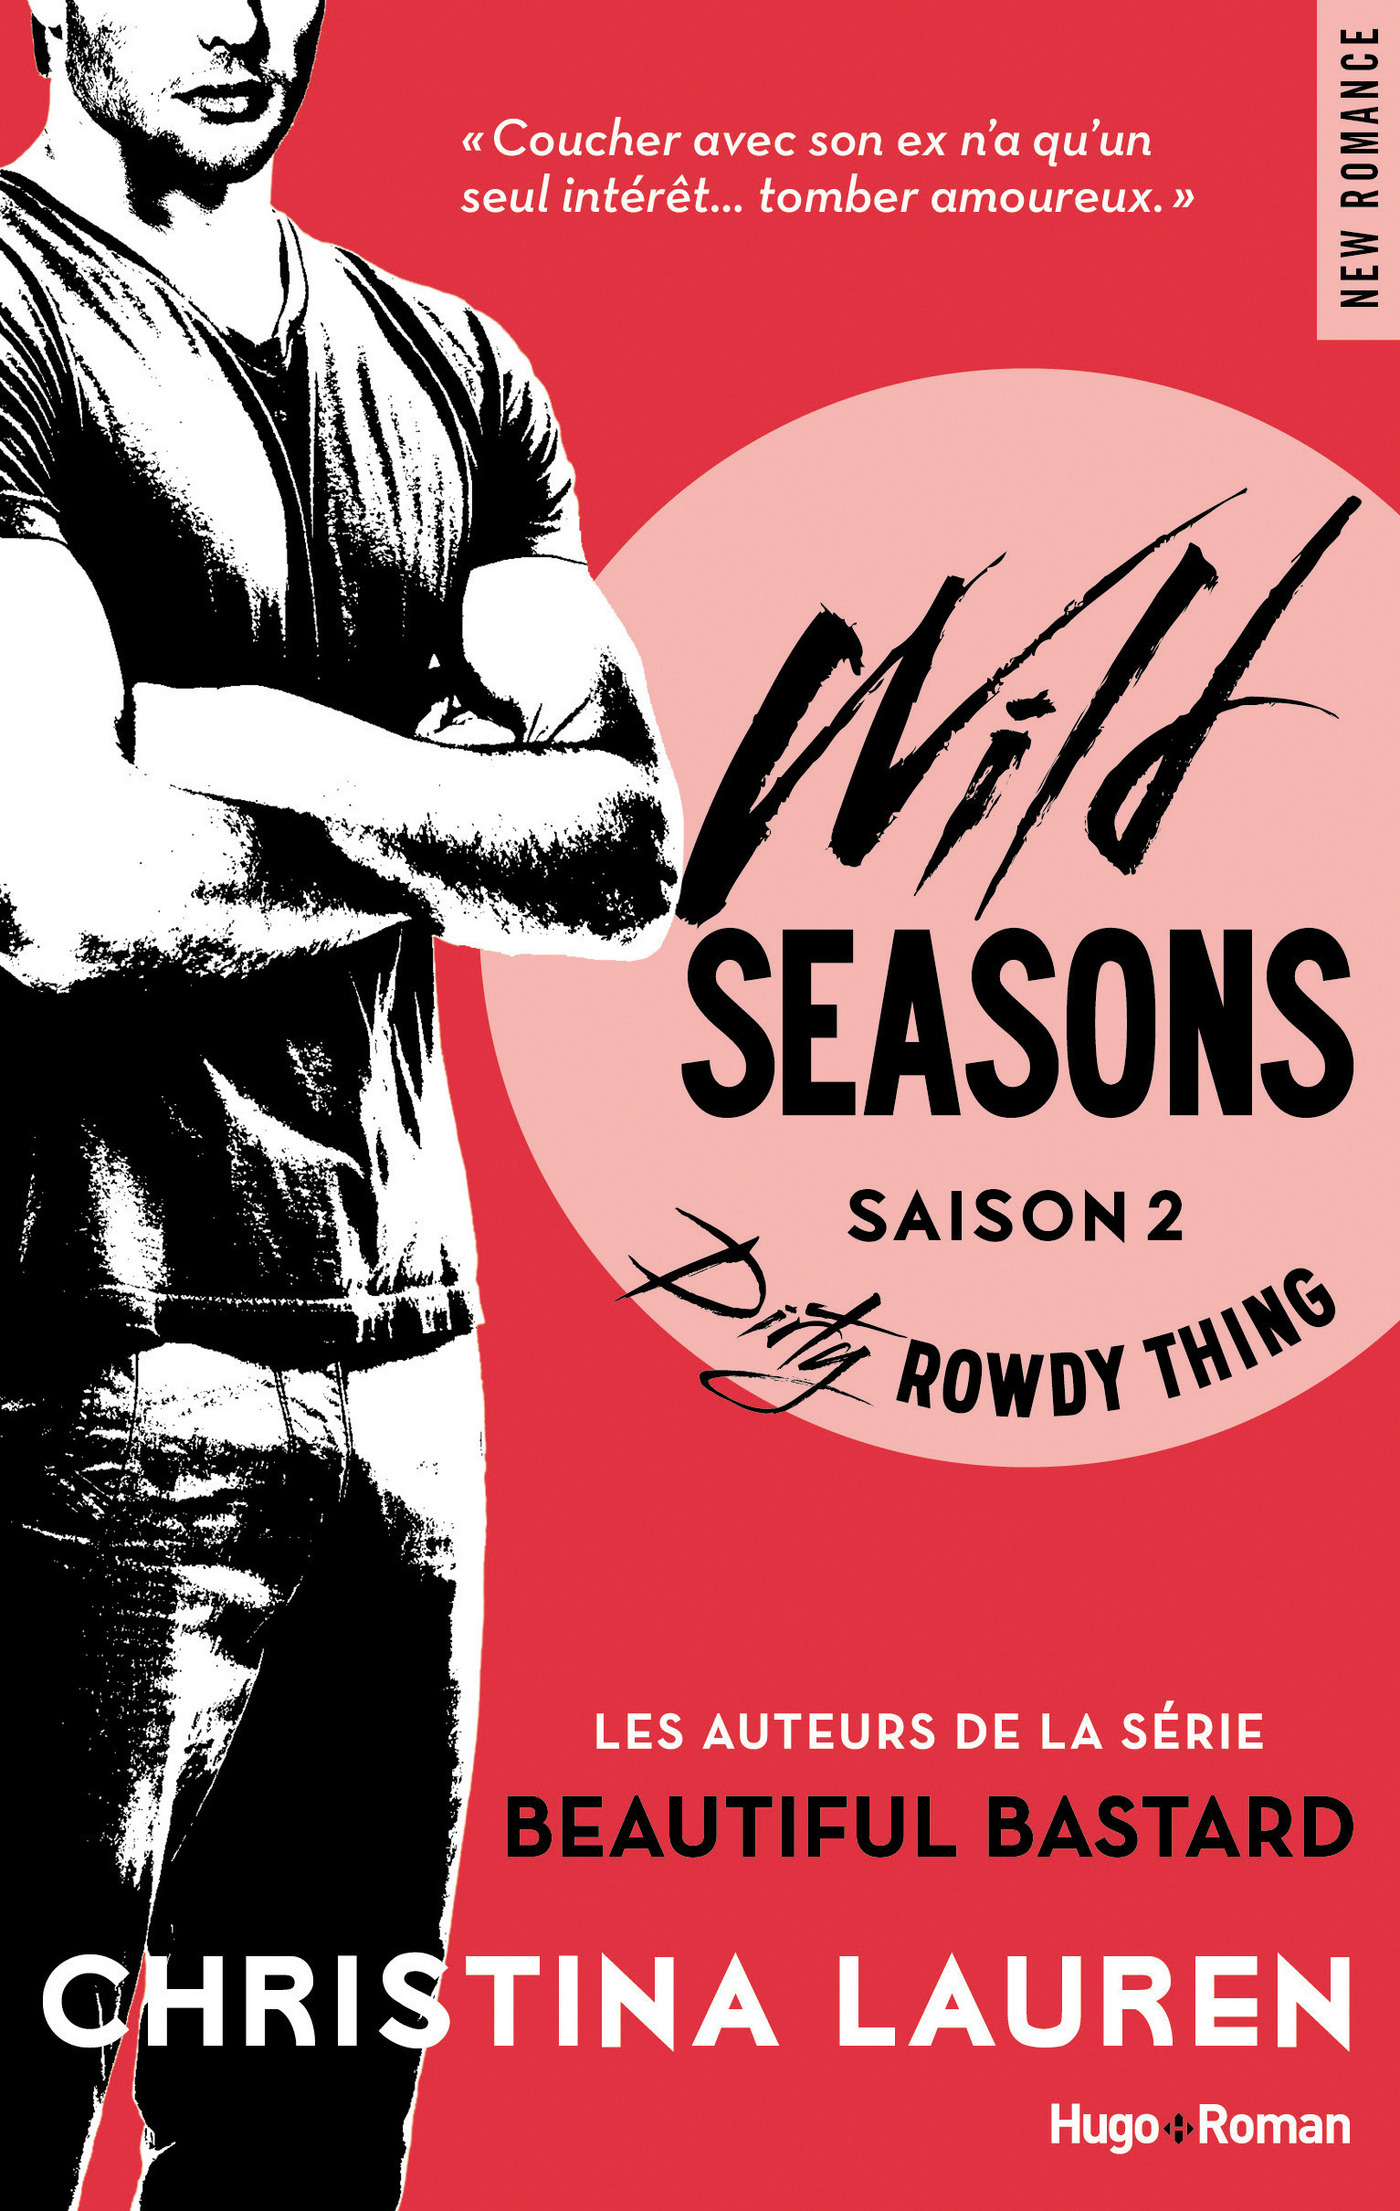 Wild Seasons saison 2 Dirty rowdy thing